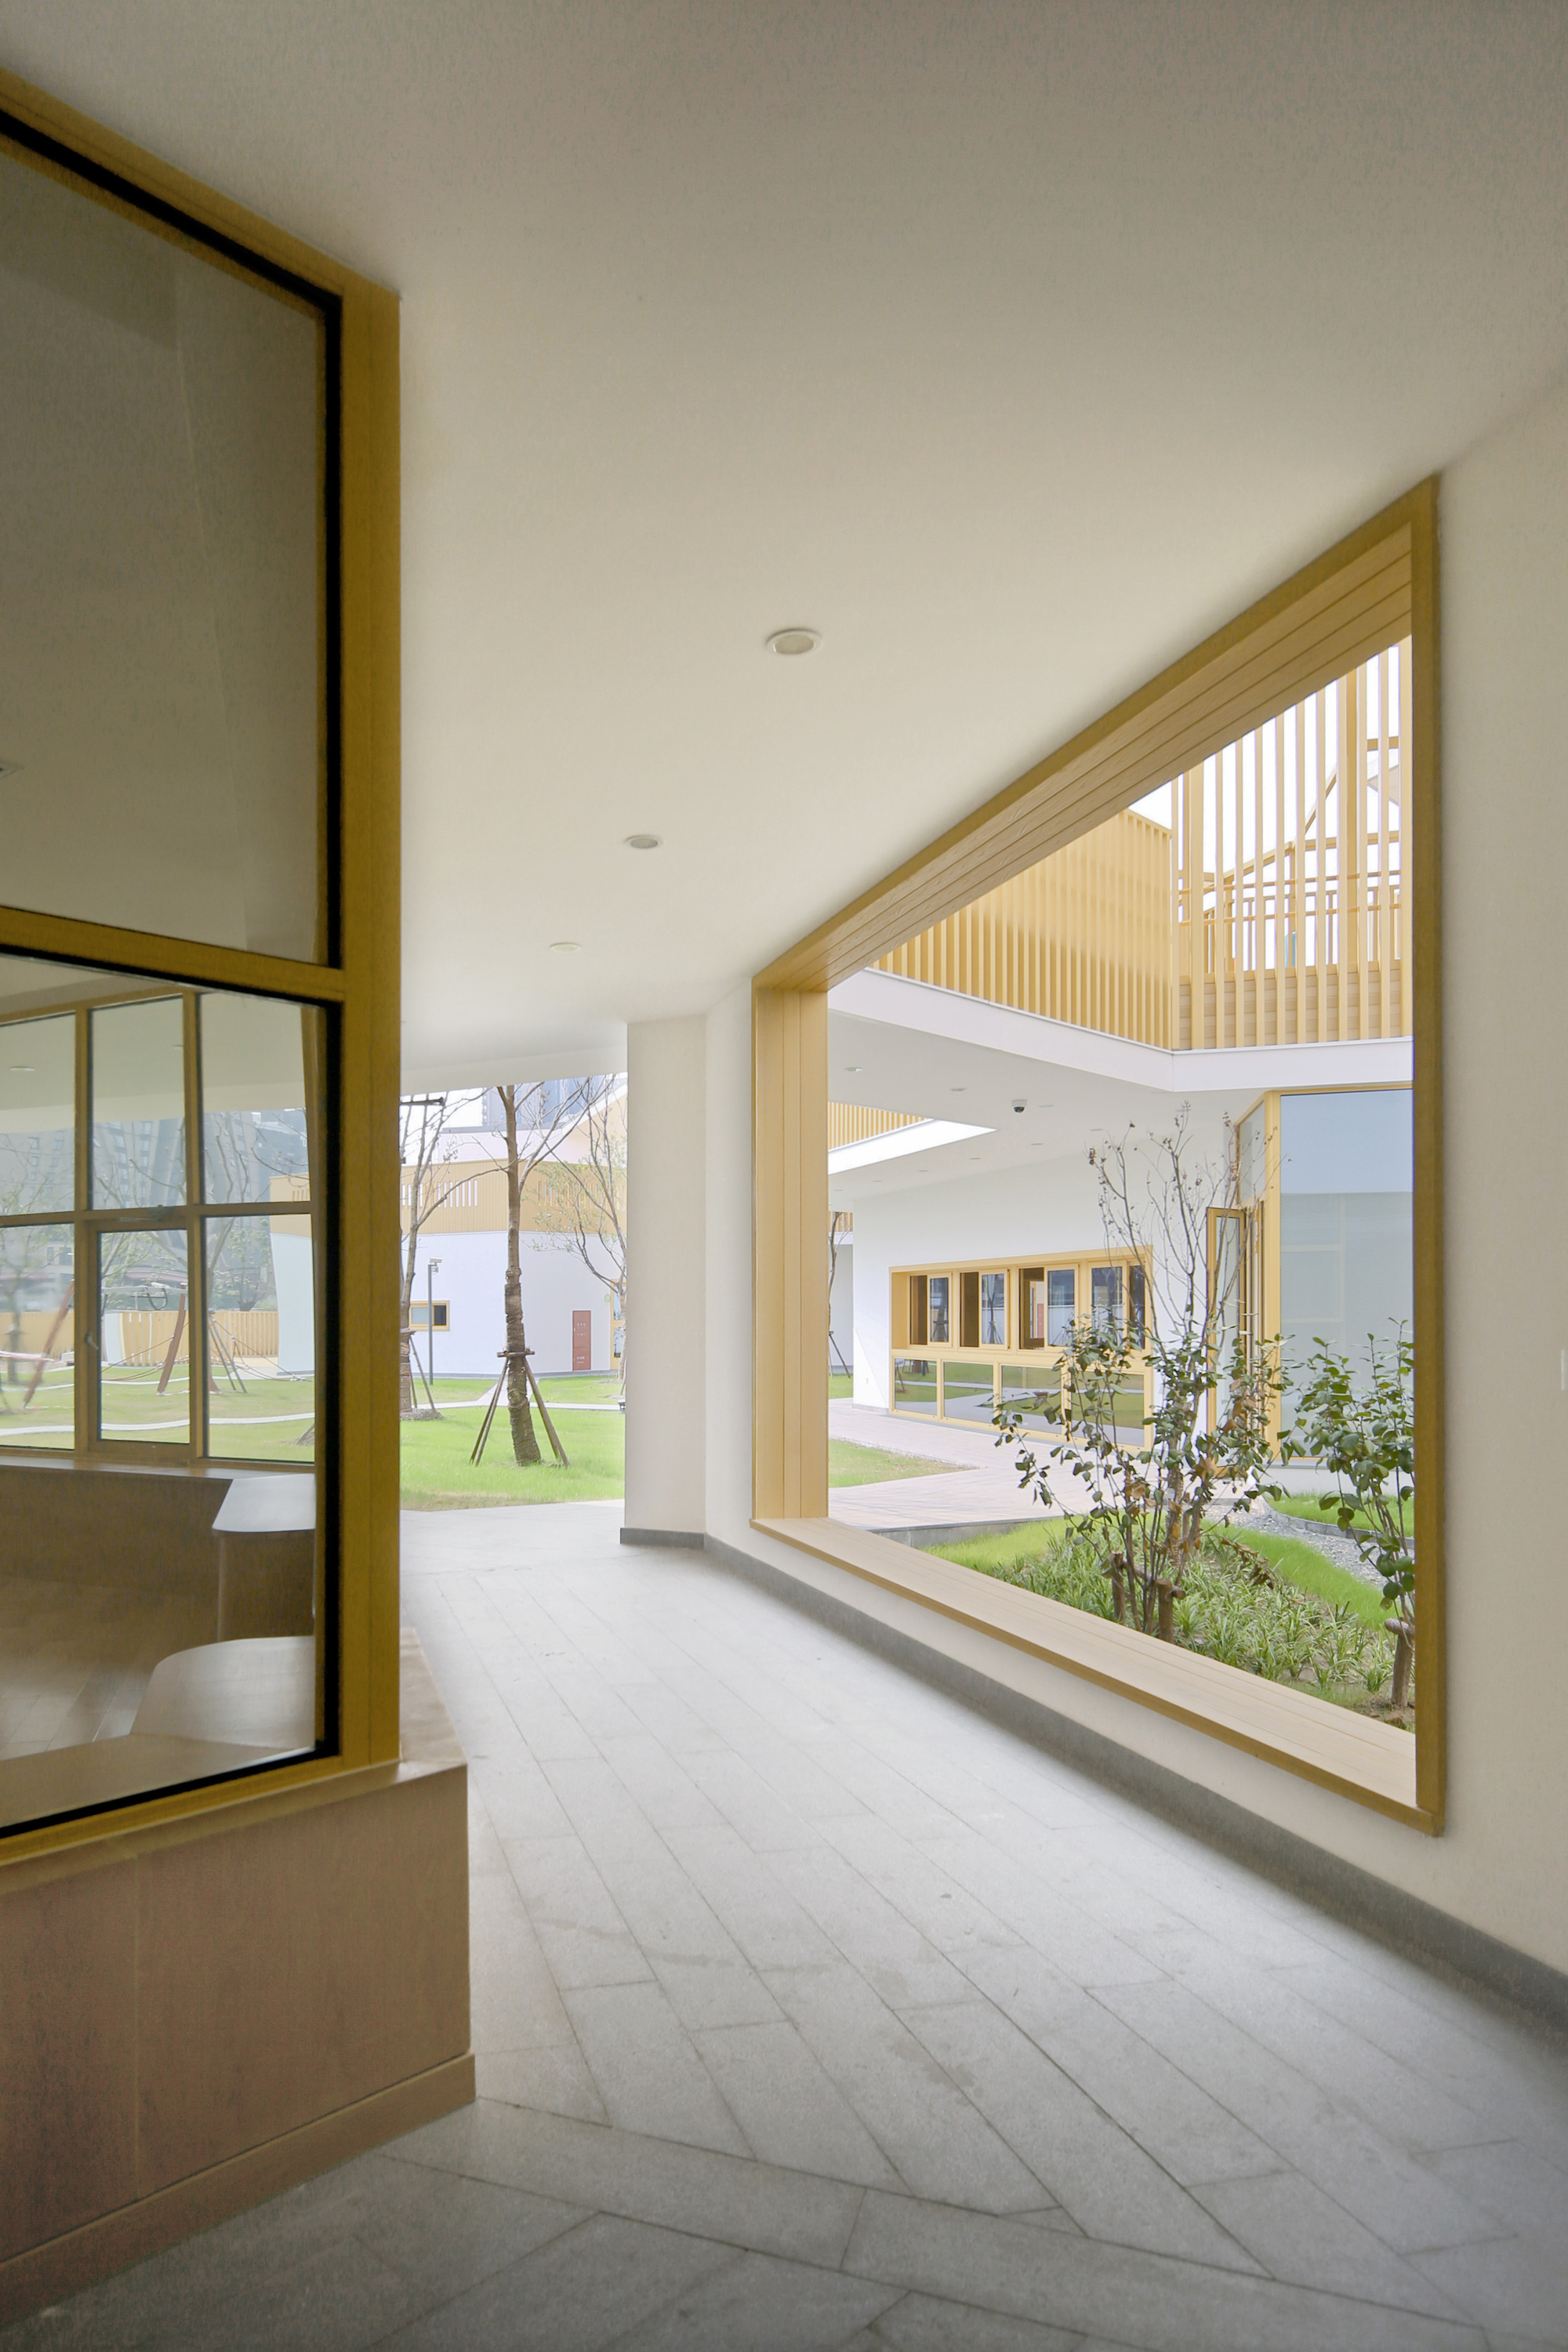 Gallery Of East China Normal University Affiliated Bilingual Kindergarten Scenic Architecture Office 10